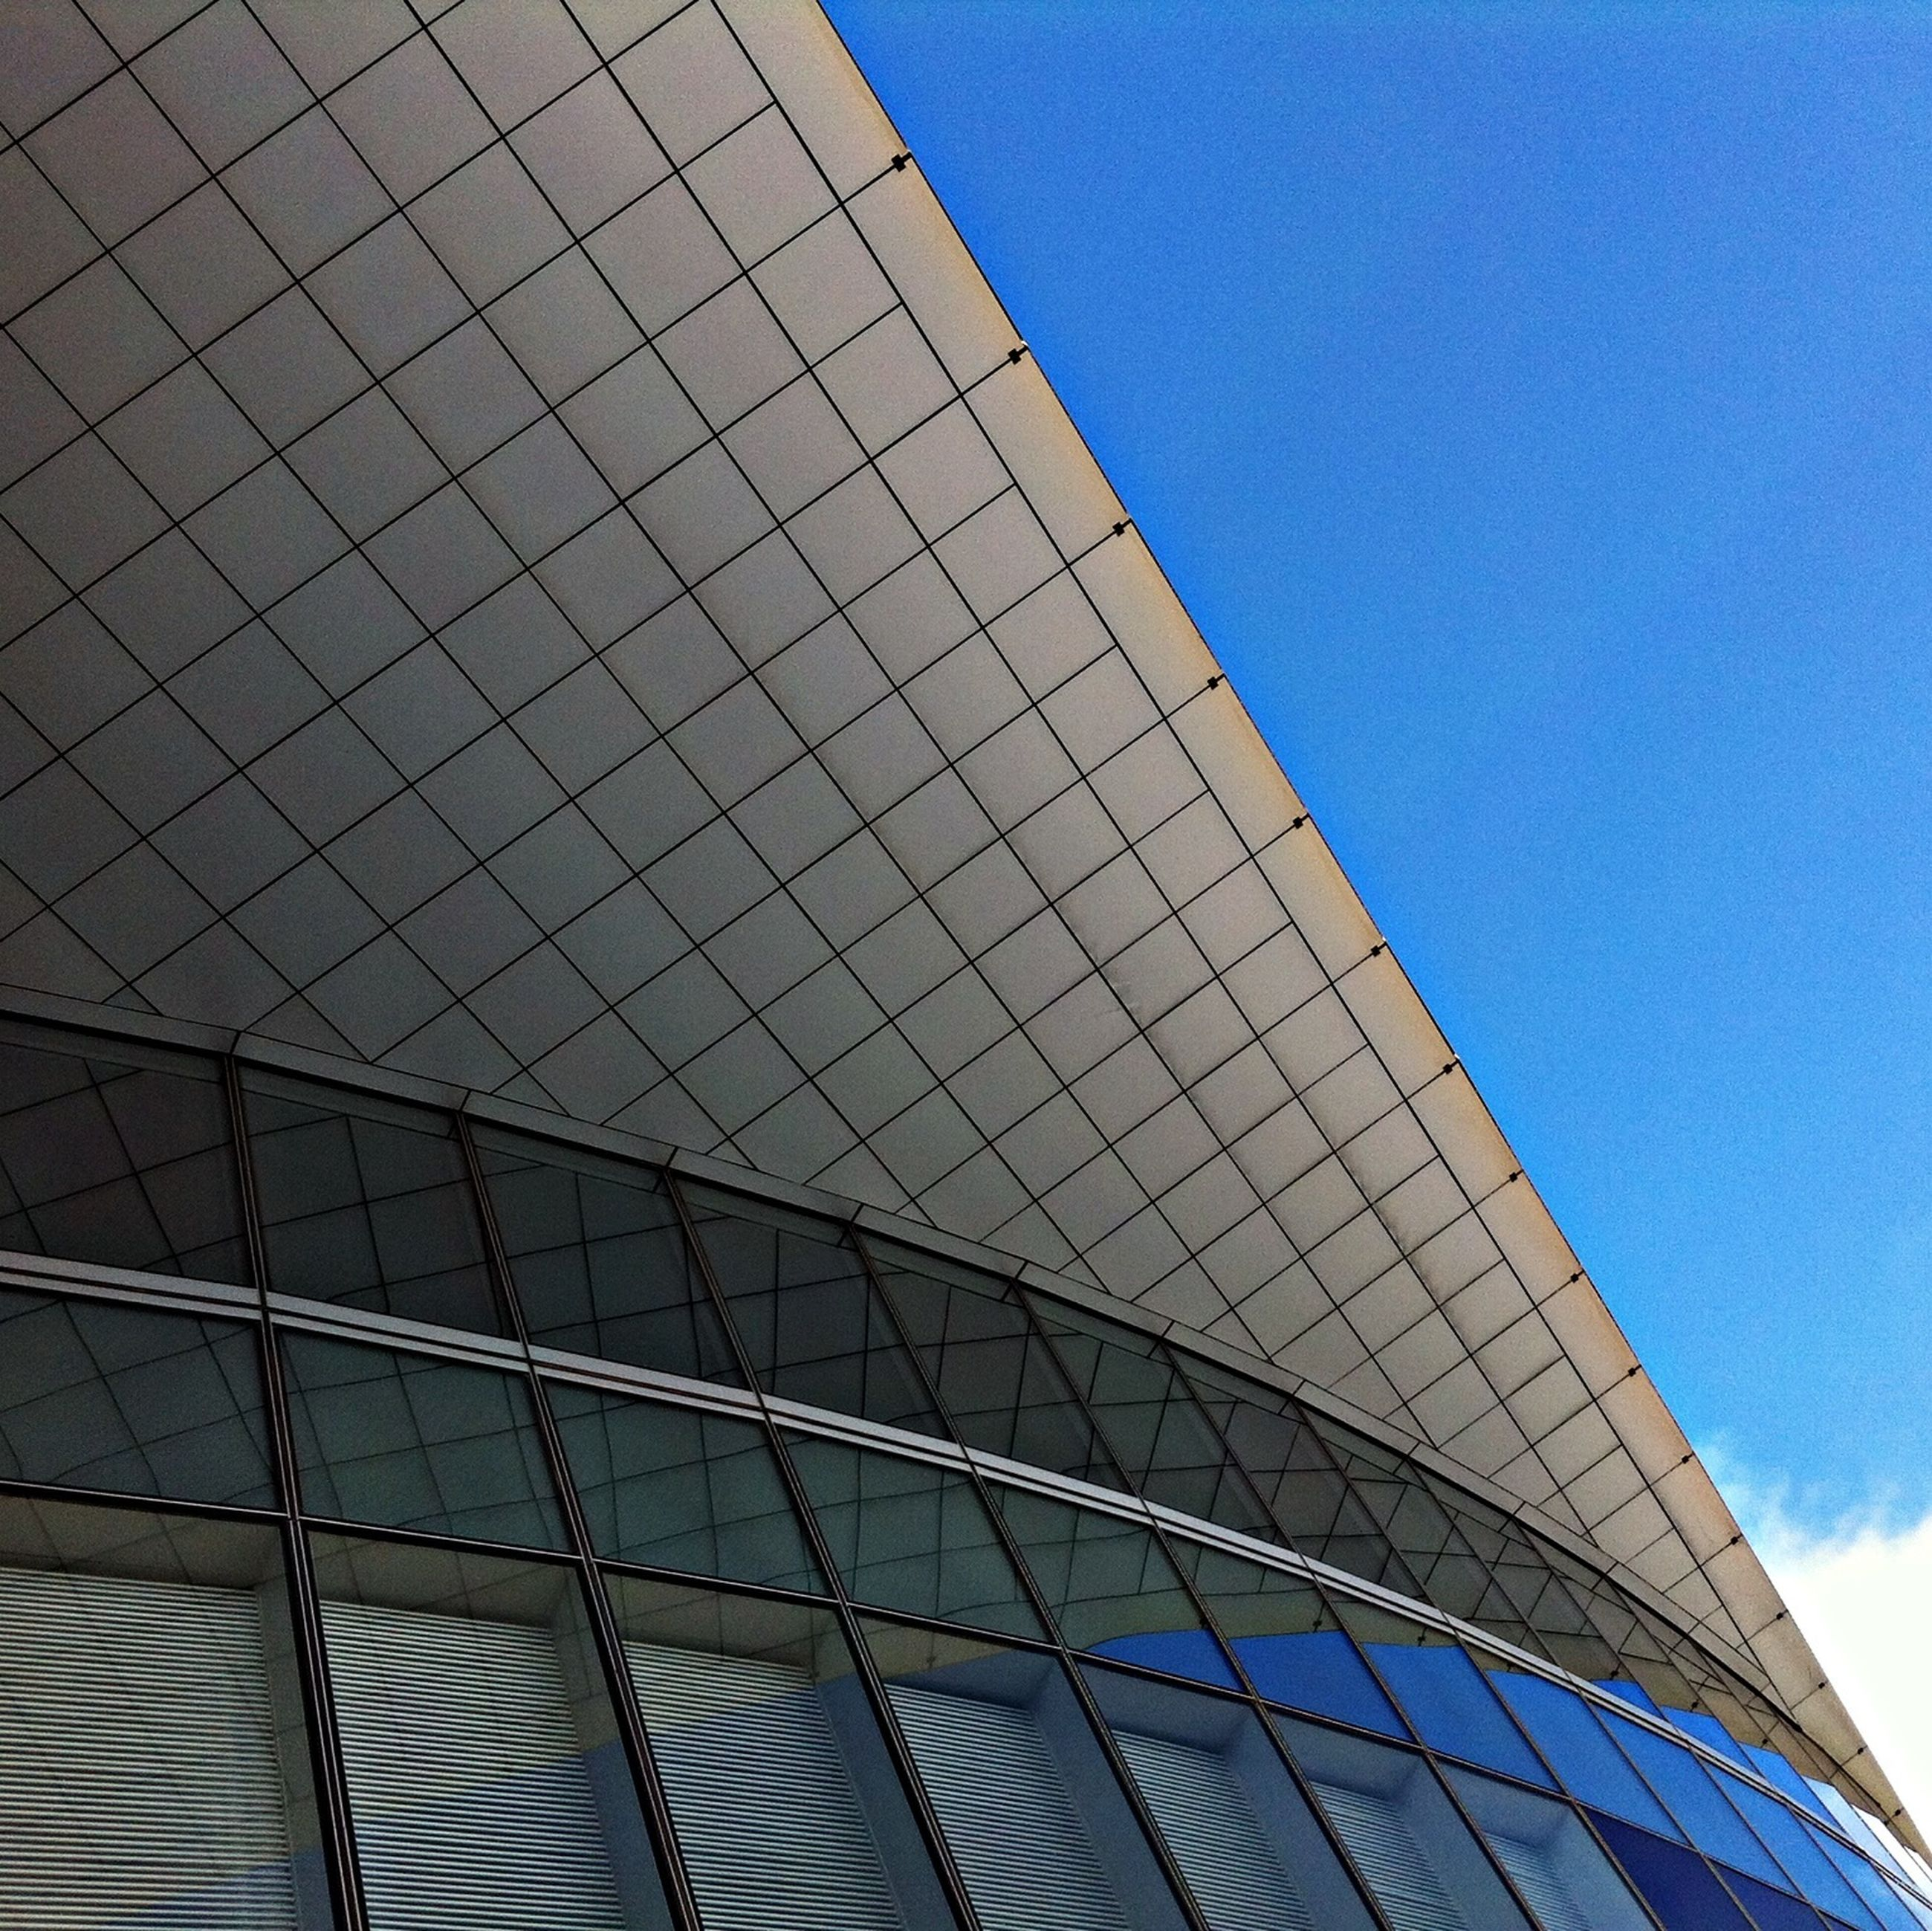 architecture, low angle view, built structure, building exterior, modern, blue, sky, office building, city, glass - material, building, reflection, pattern, tall - high, skyscraper, day, tower, outdoors, no people, architectural feature